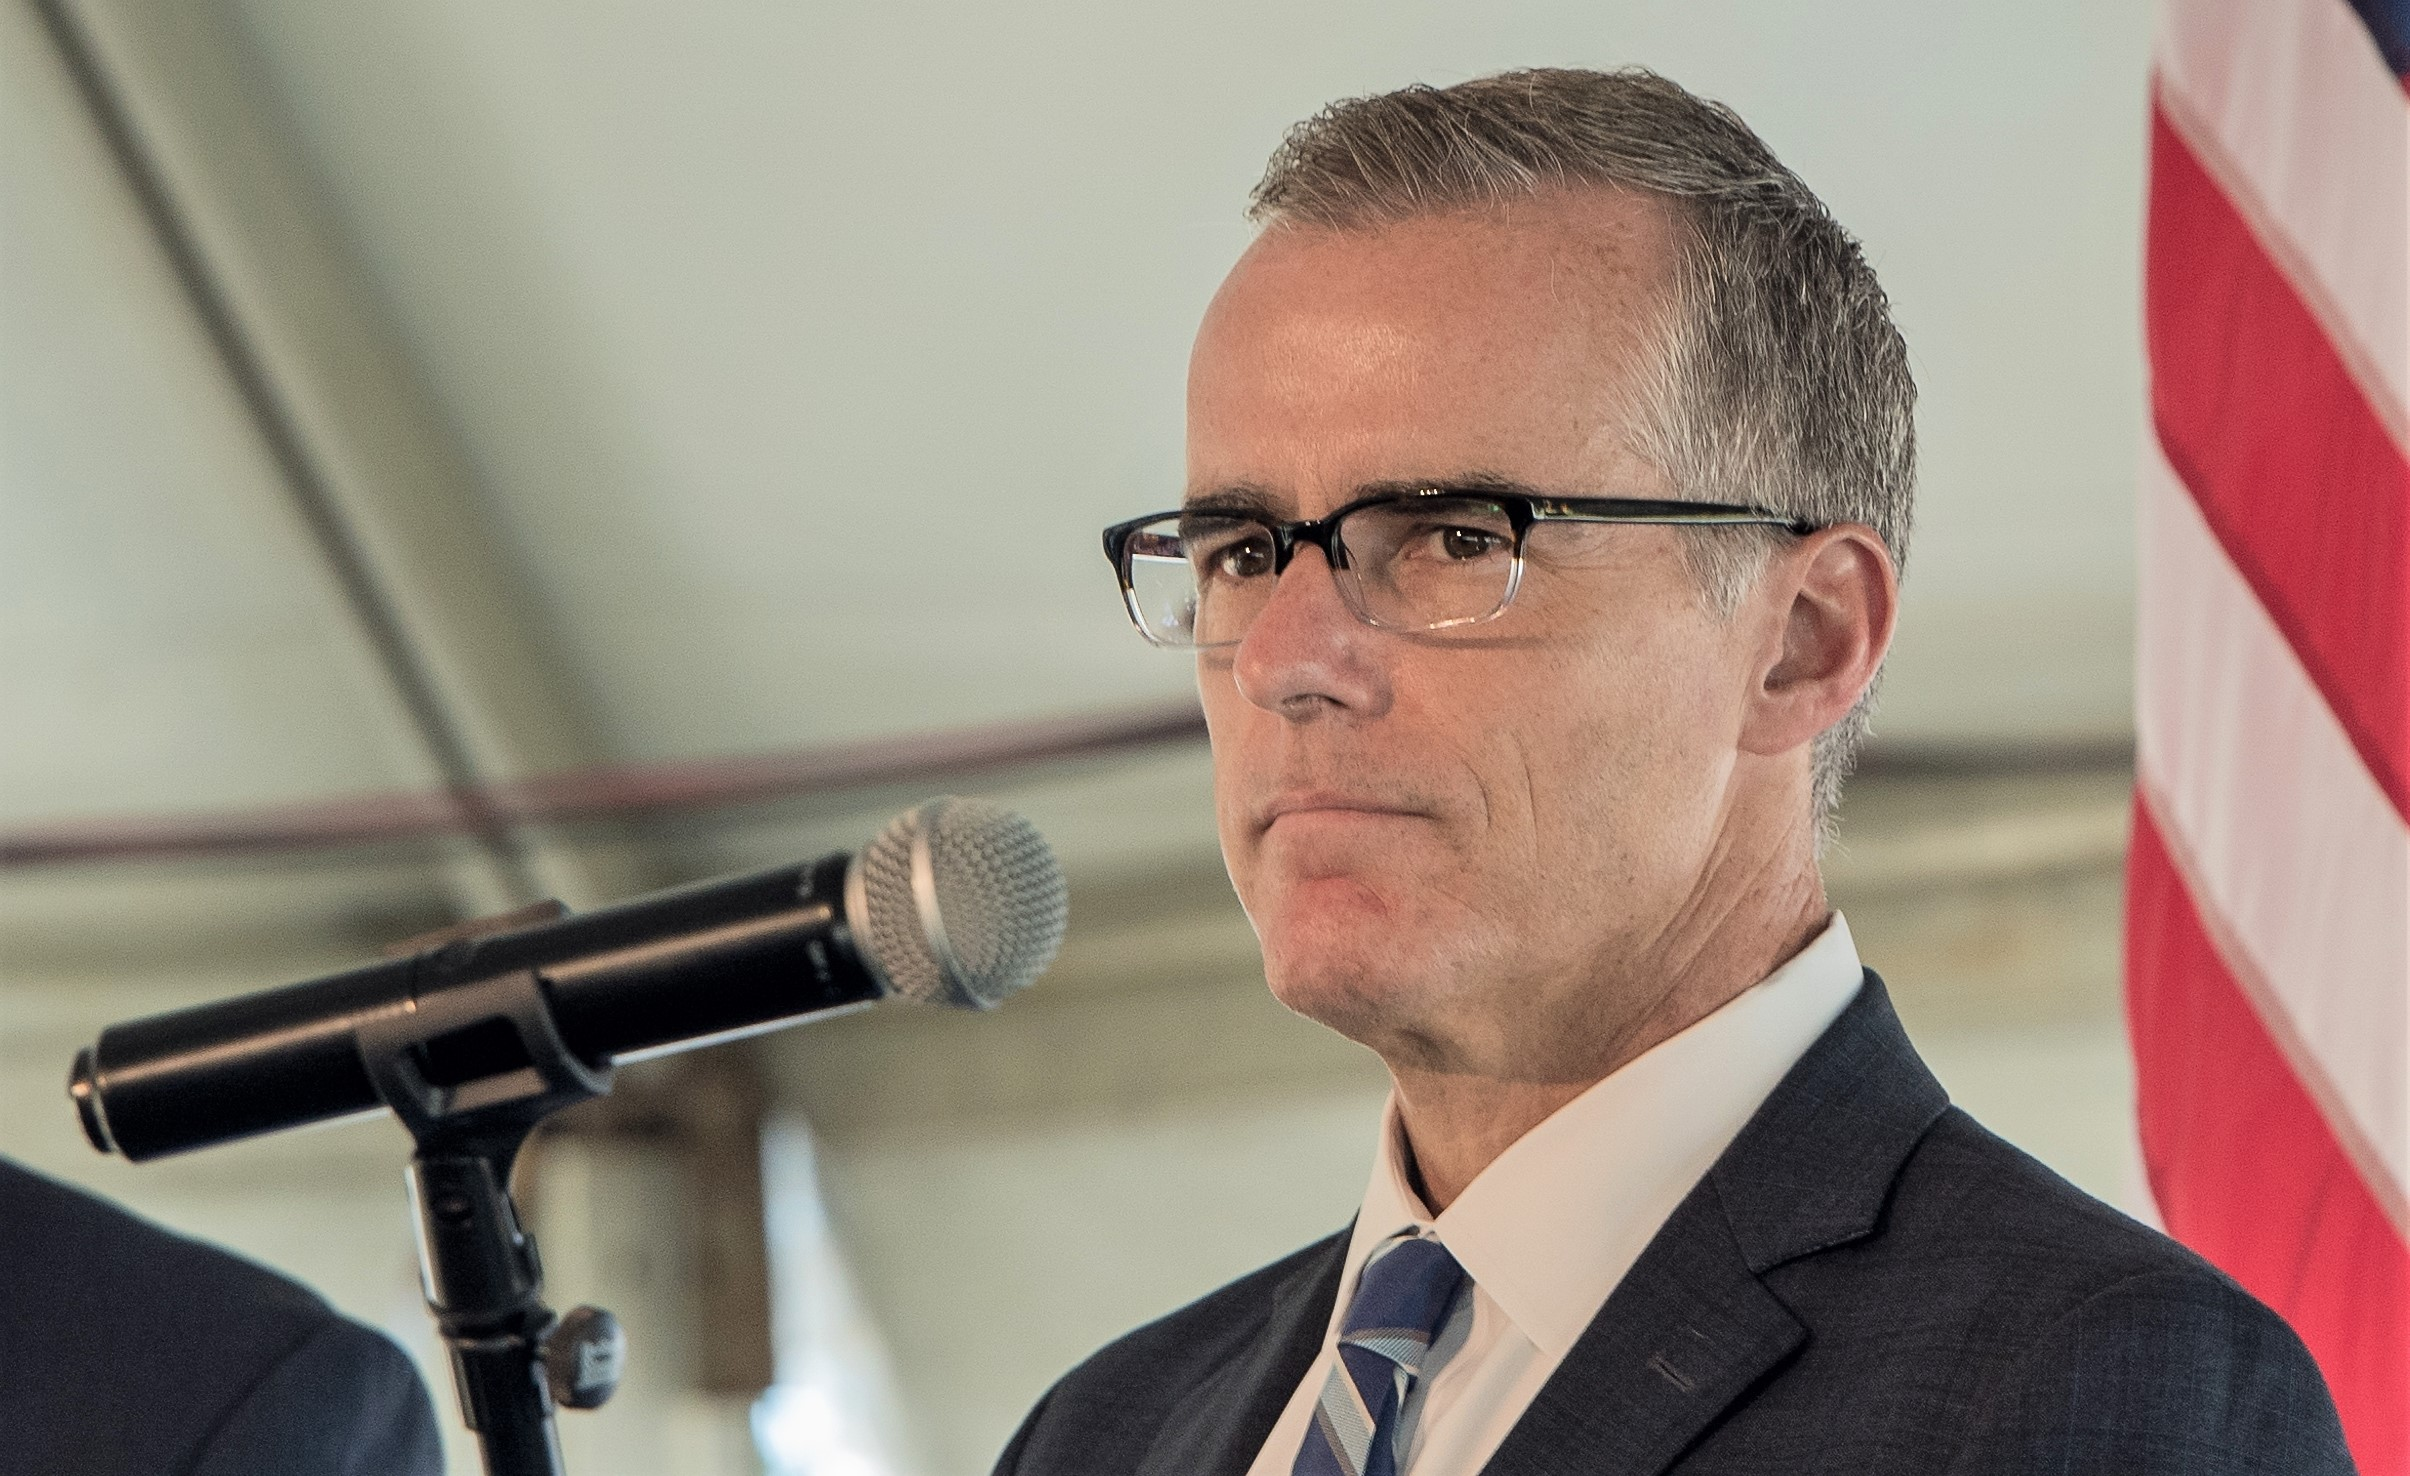 Andrew McCabe fired OIG Office of the Inspector General report lacked candor lied